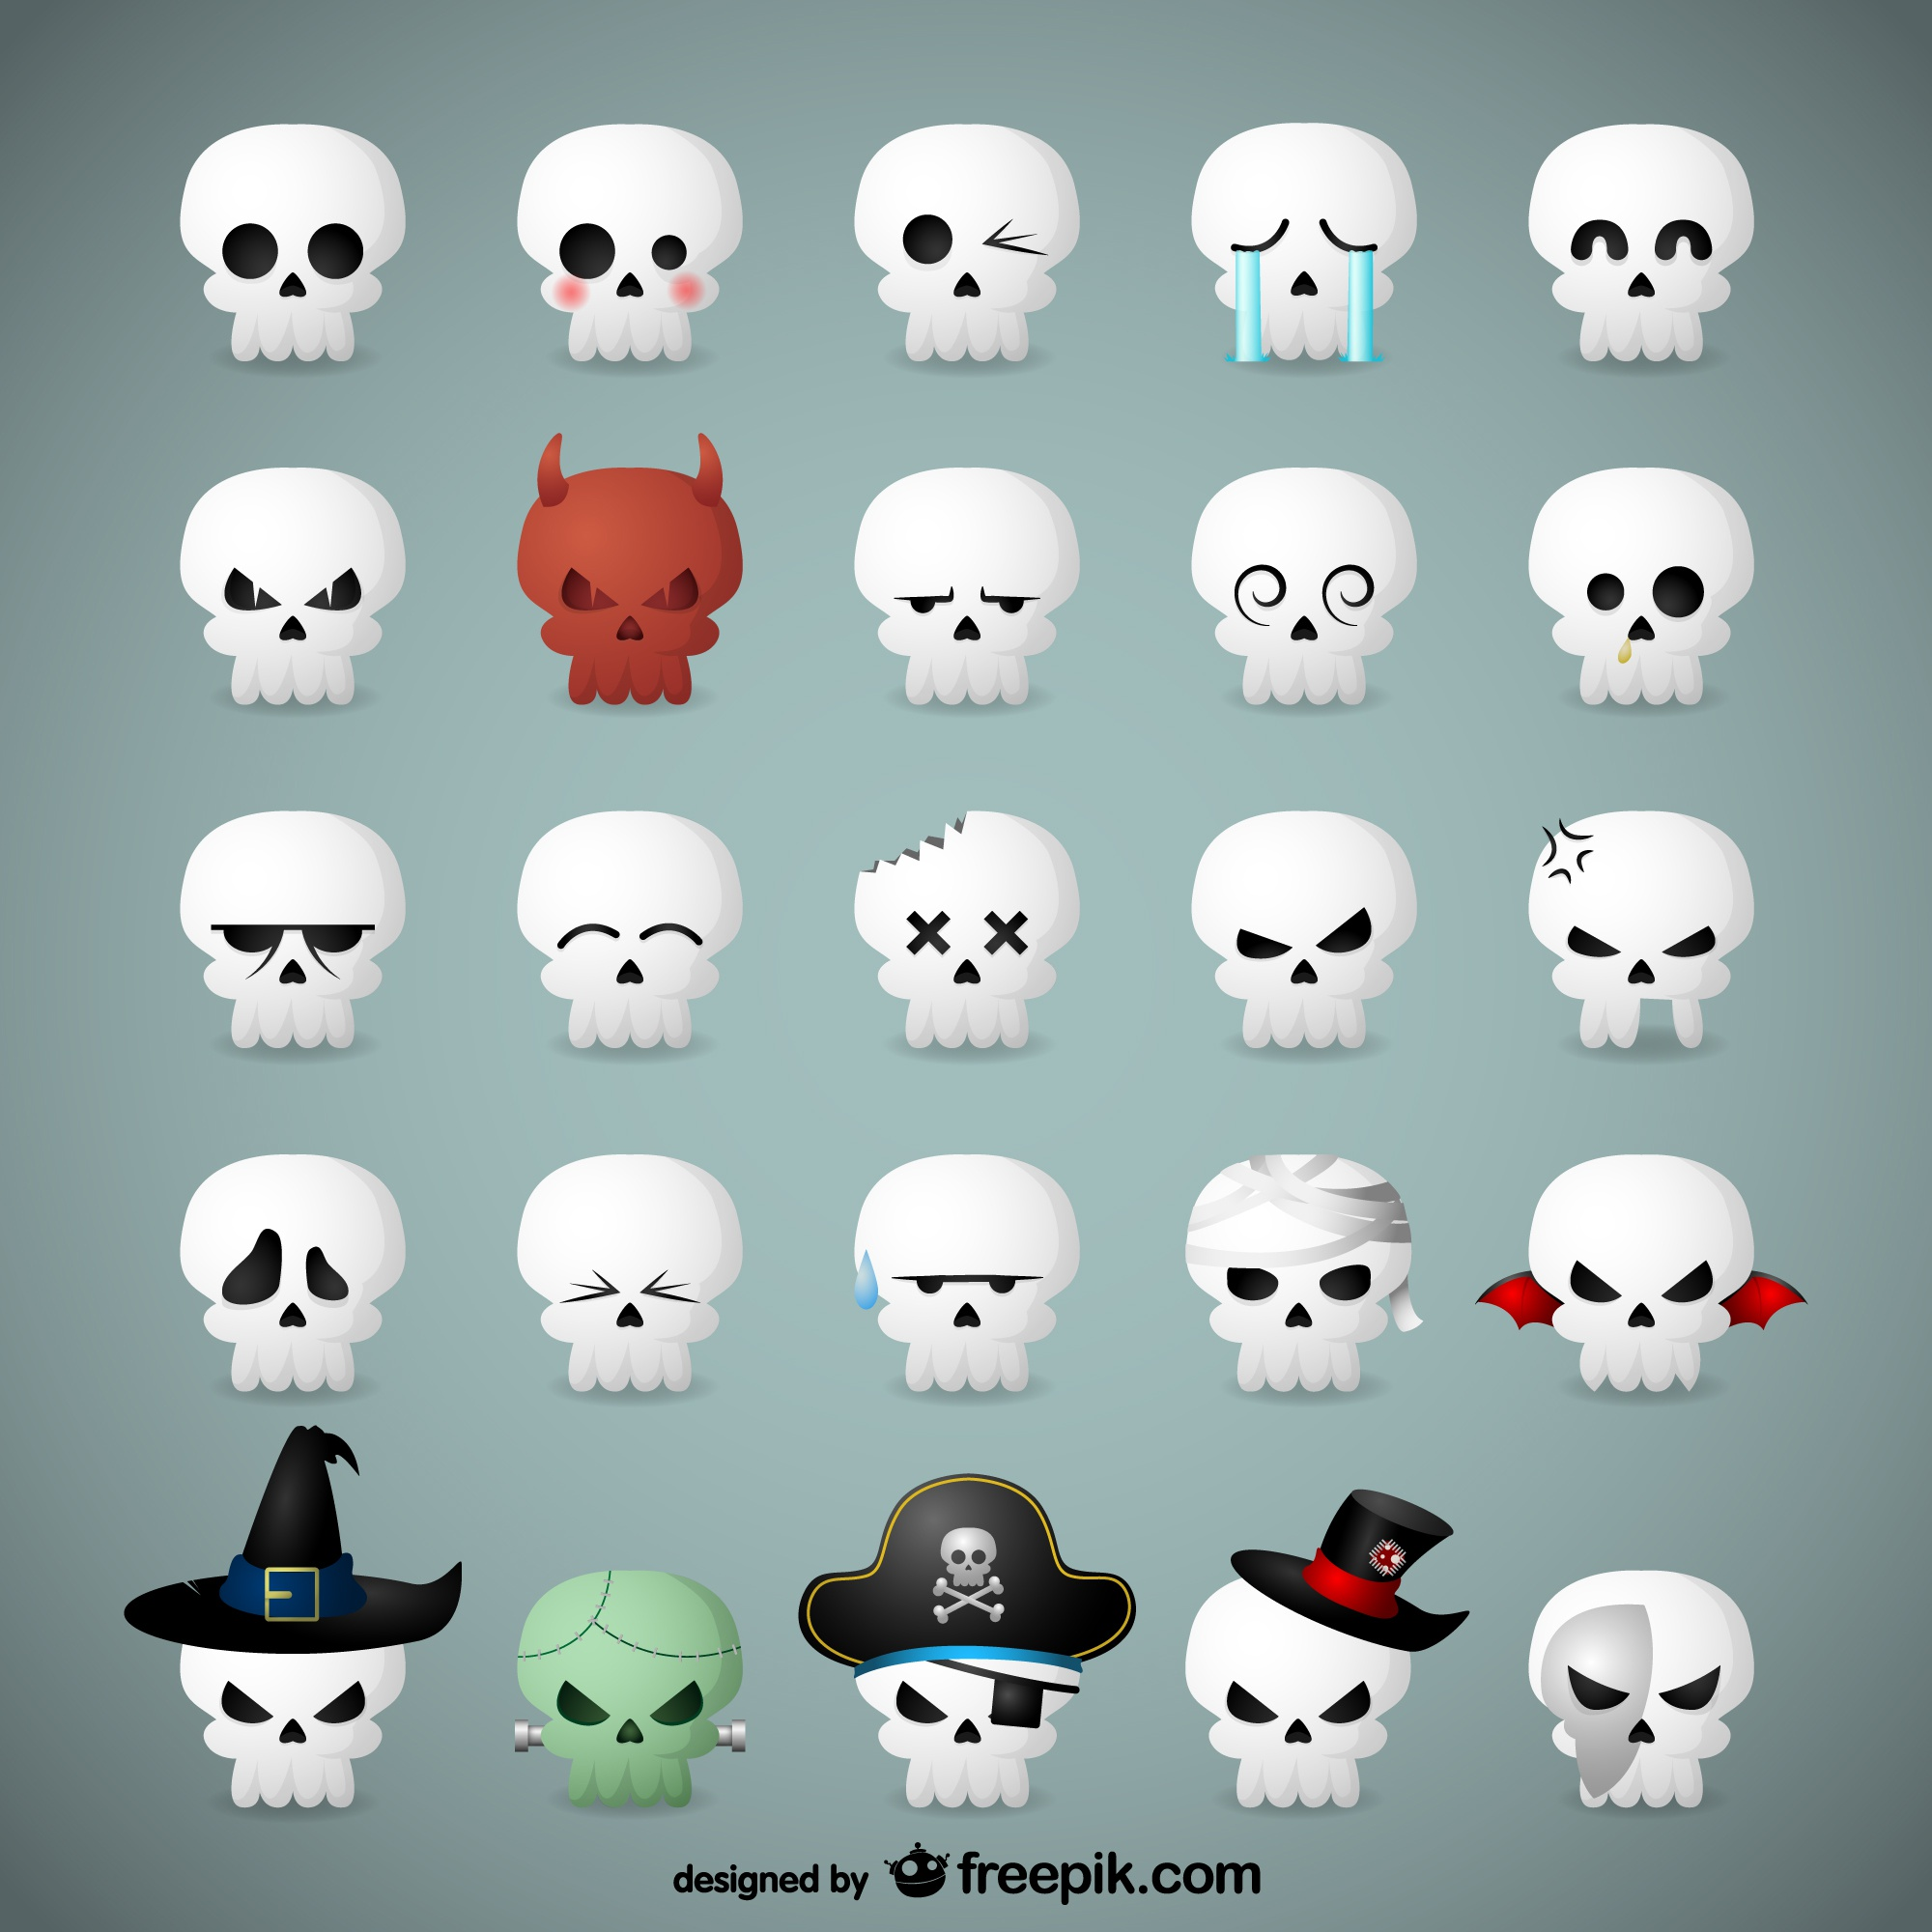 Skull emoticons for Halloween